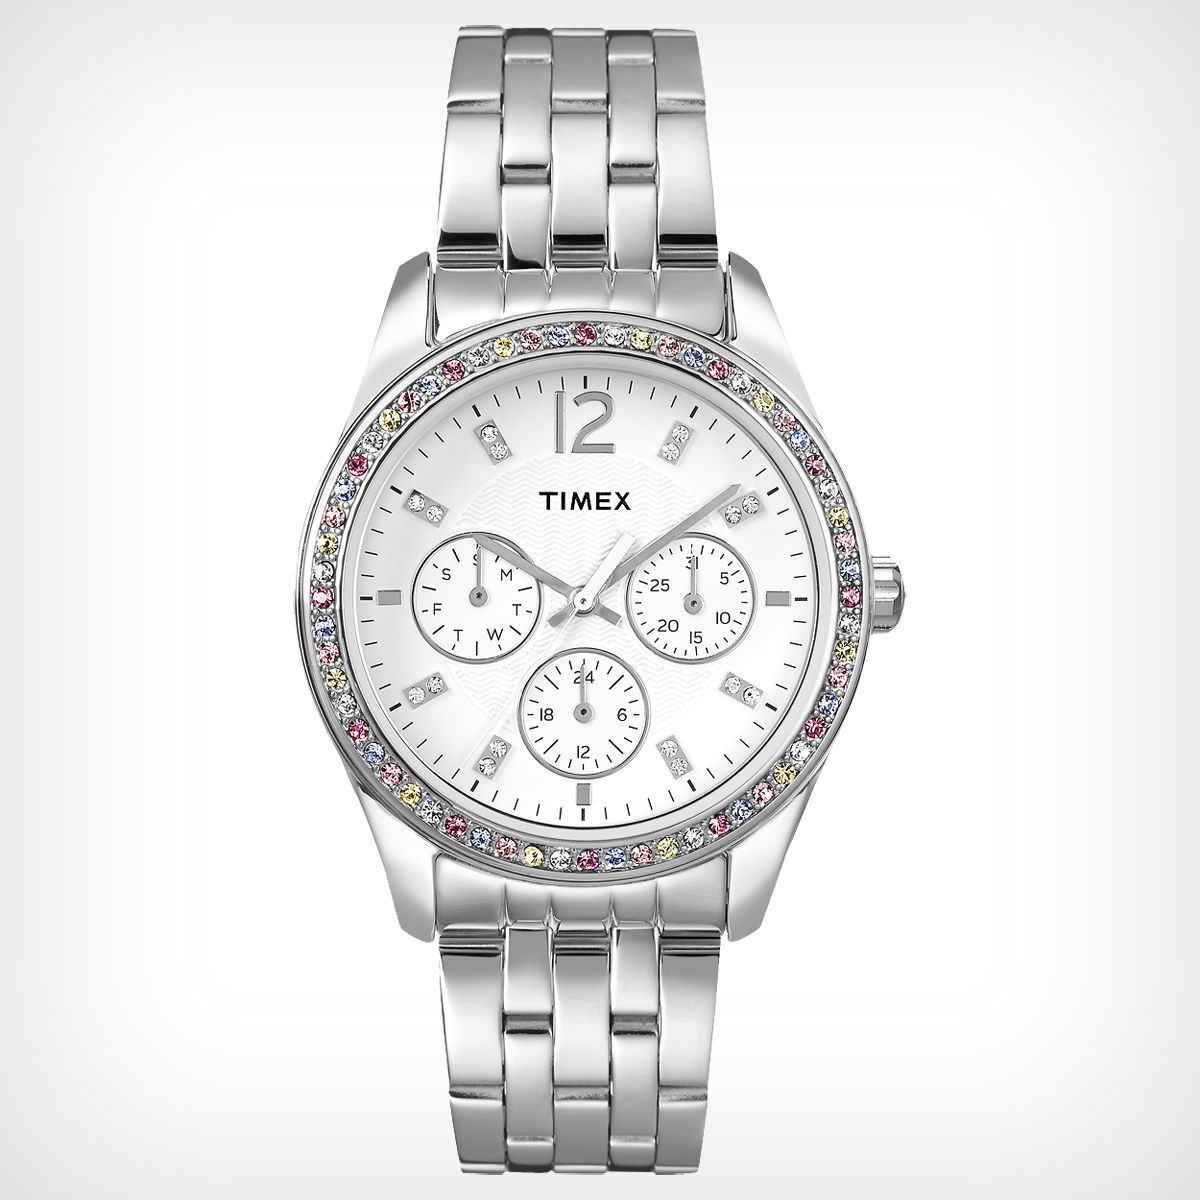 timex watches for women – 1 | watches | Pinterest | Timex watches